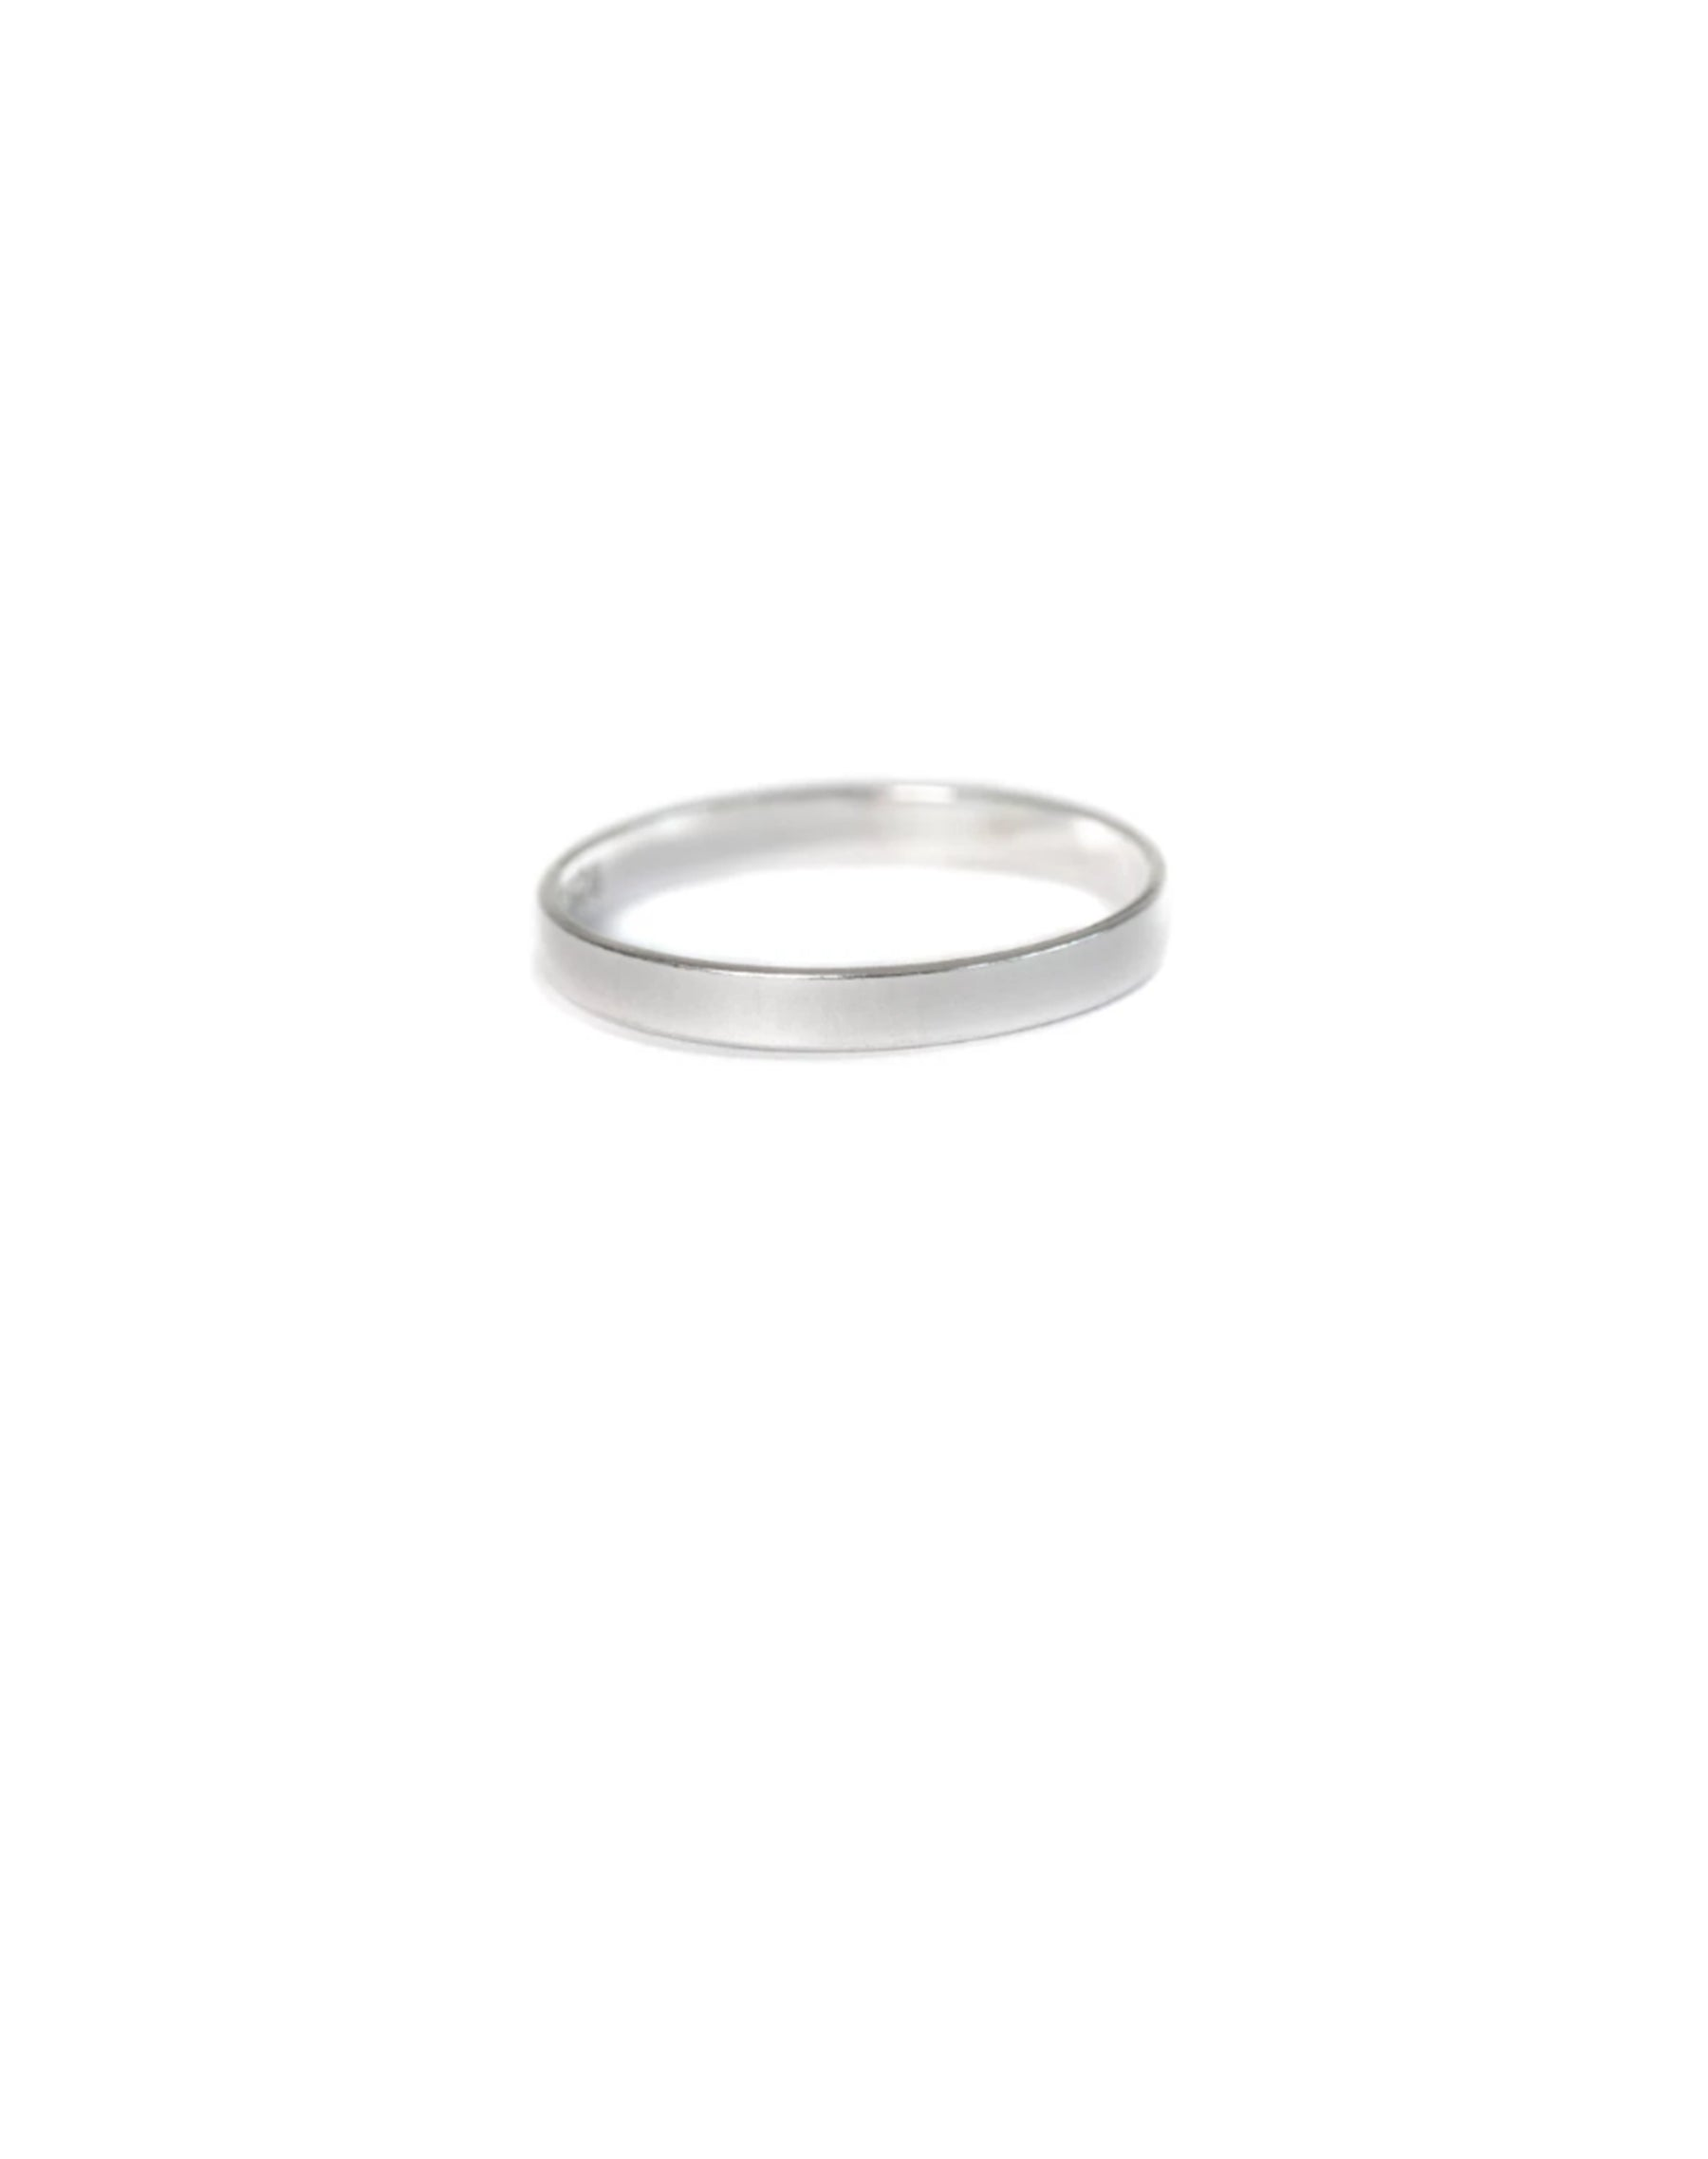 Image of the Clarence ring in silver by Lisbeth.